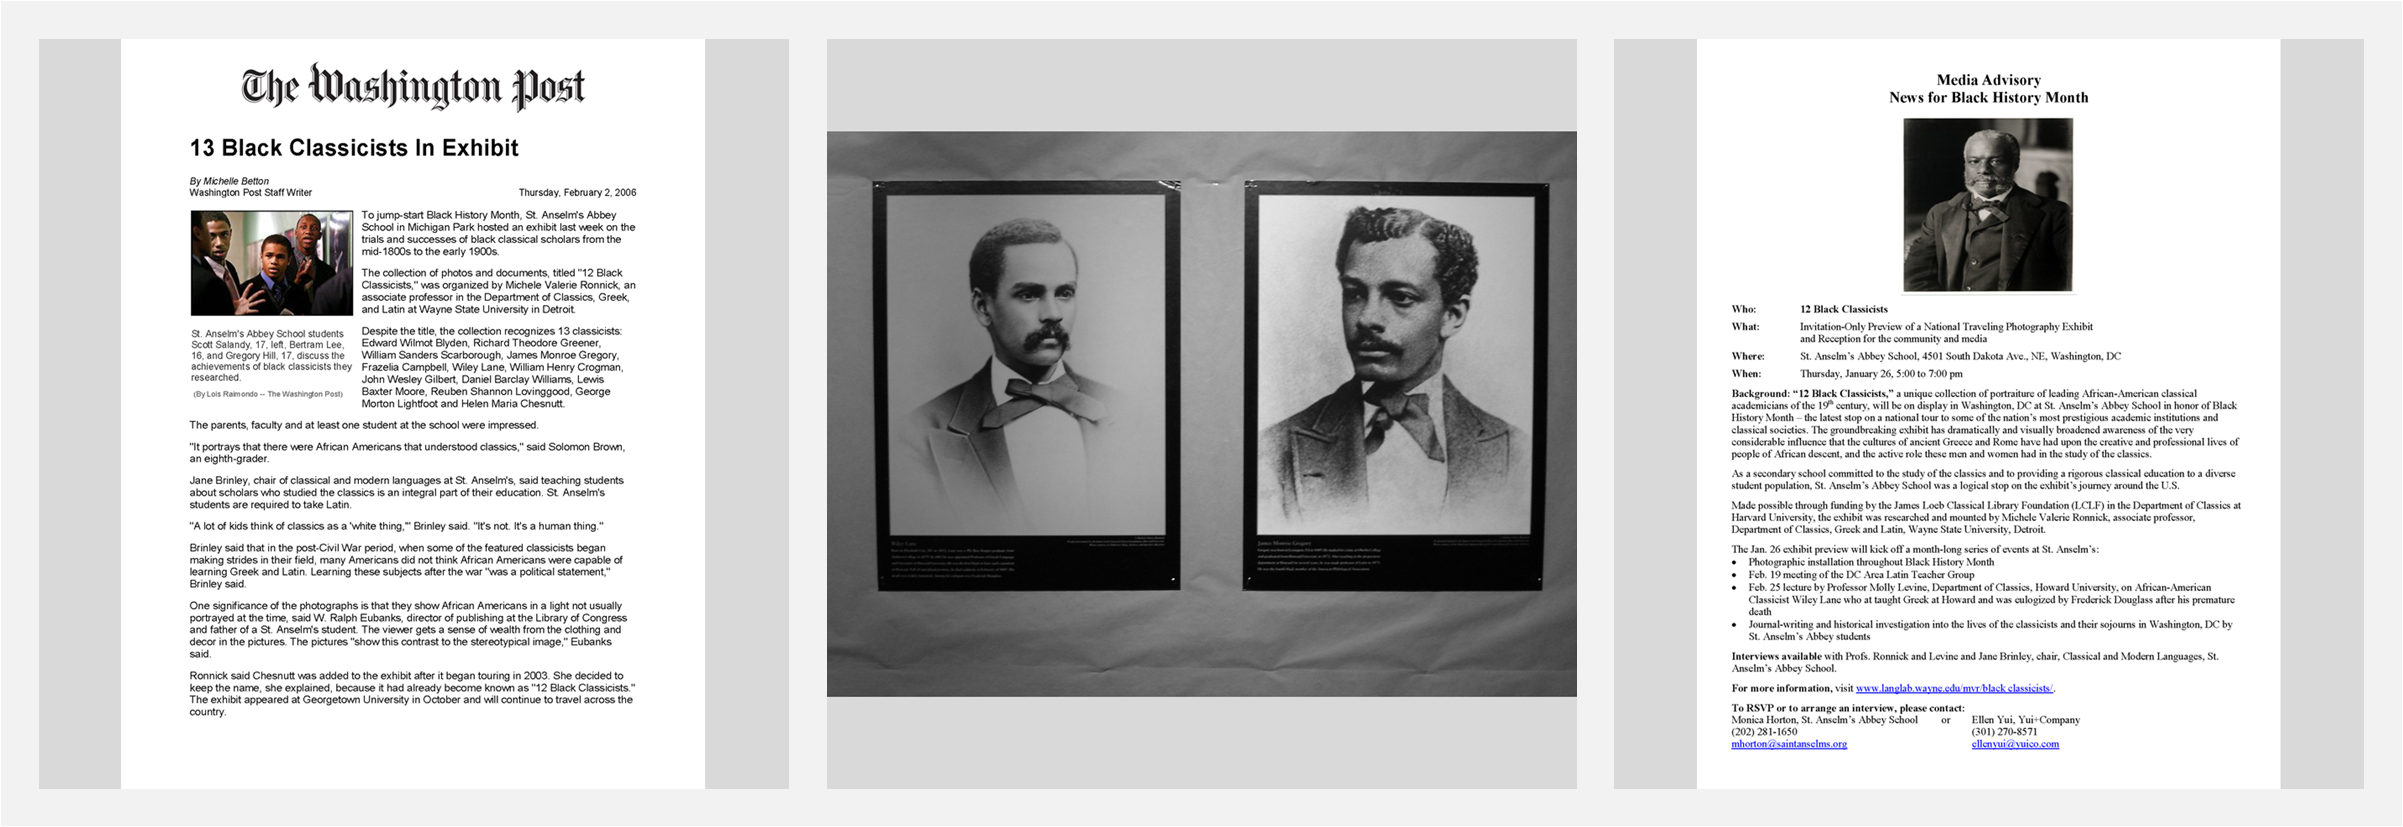 12 Black Classicists  Photography Exhibit, sponsored by Harvard's James Loeb Classical Library Foundation